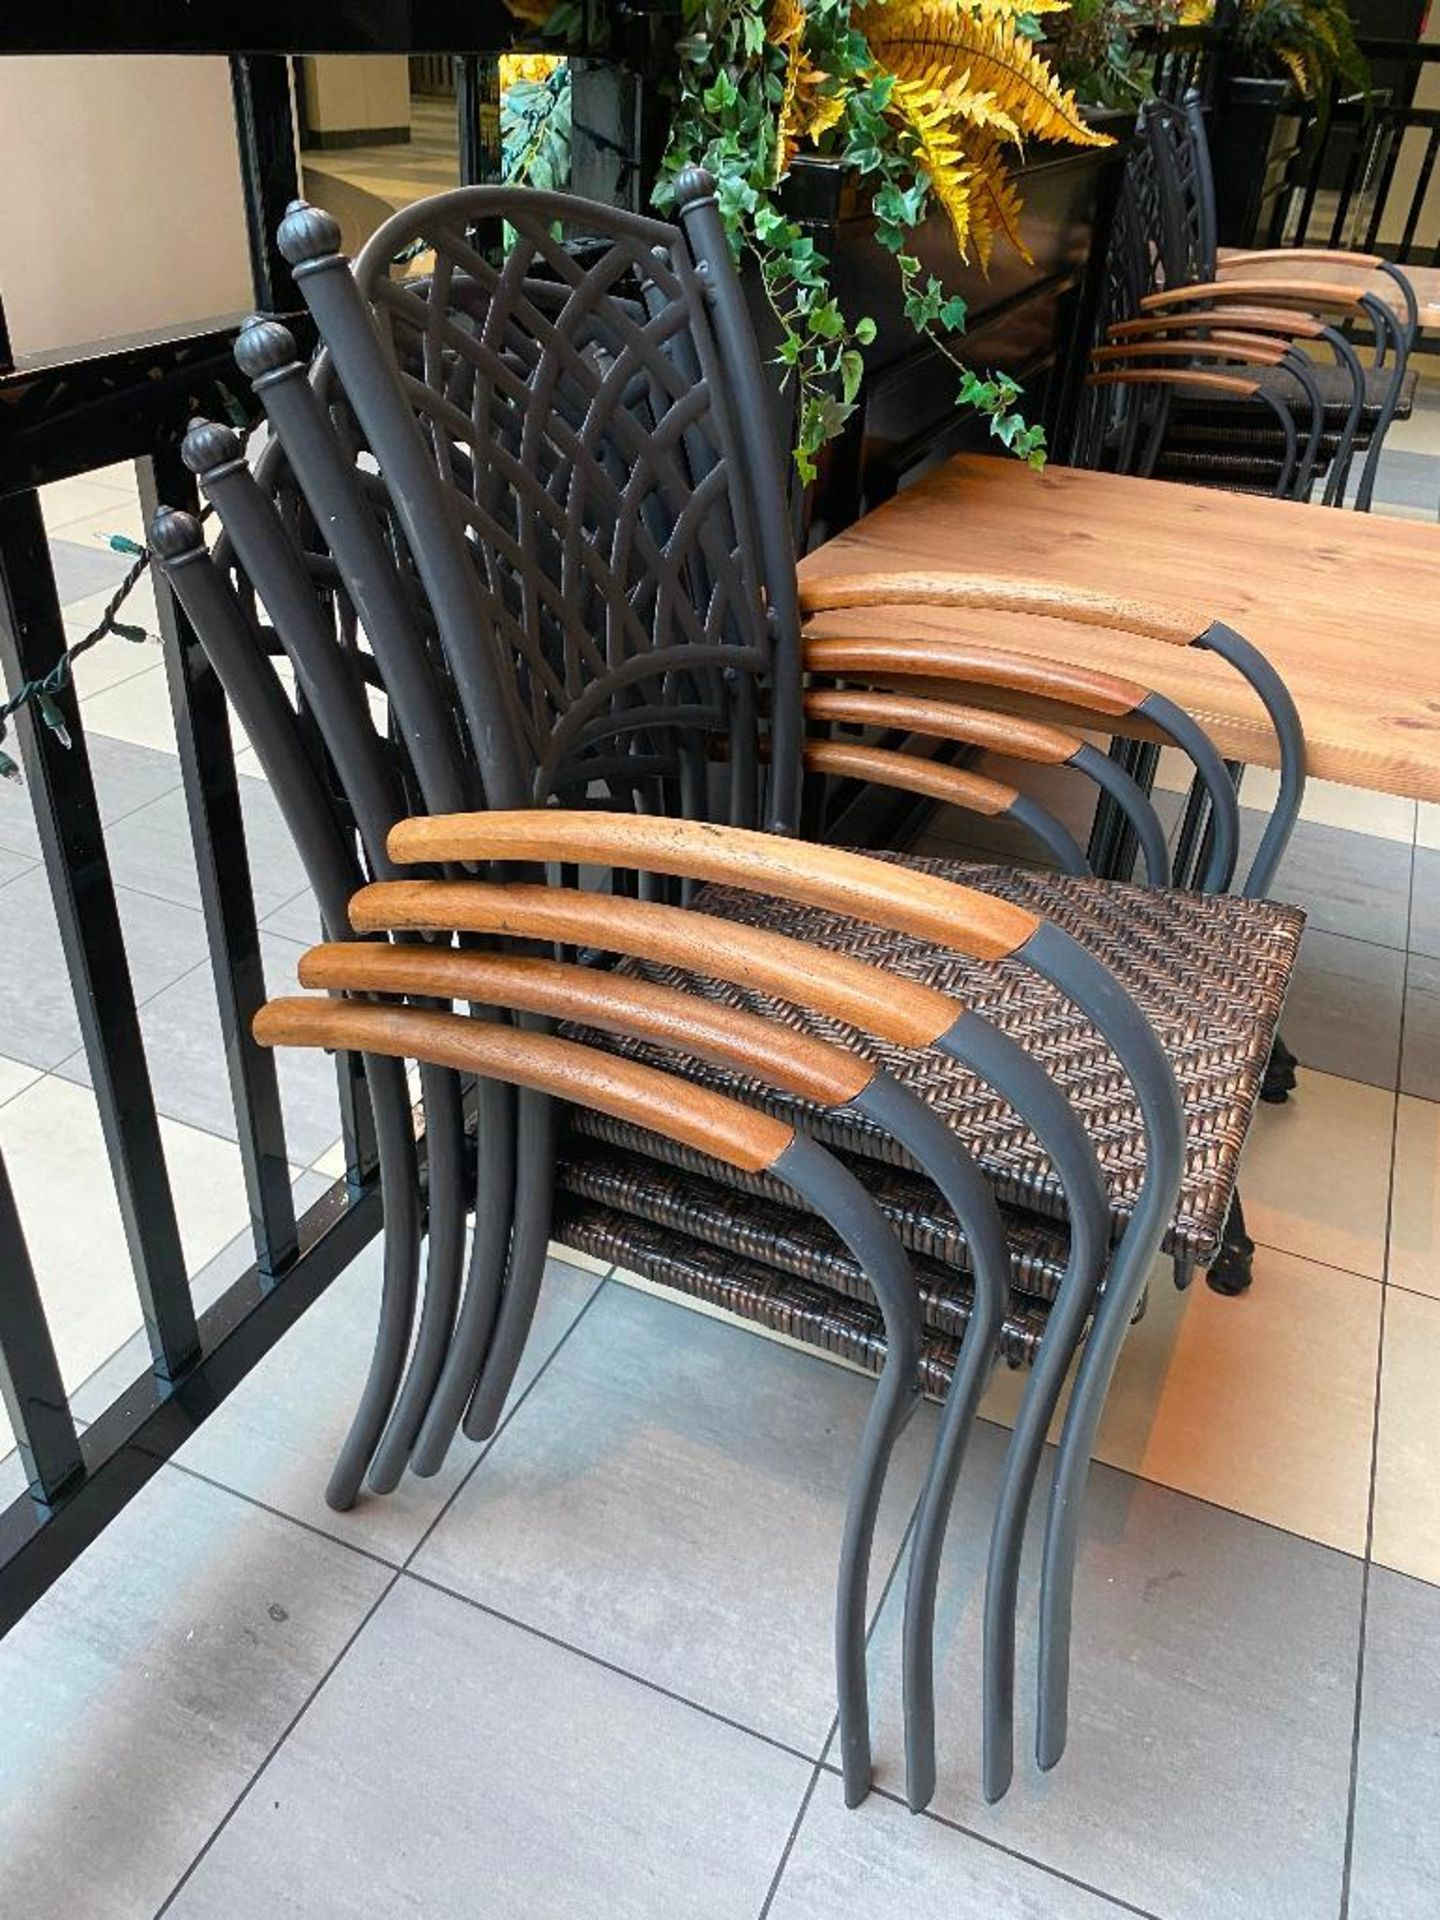 """TOPALIT 31"""" X 31"""" PATIO TABLE WITH 4 CHAIRS - Image 3 of 4"""